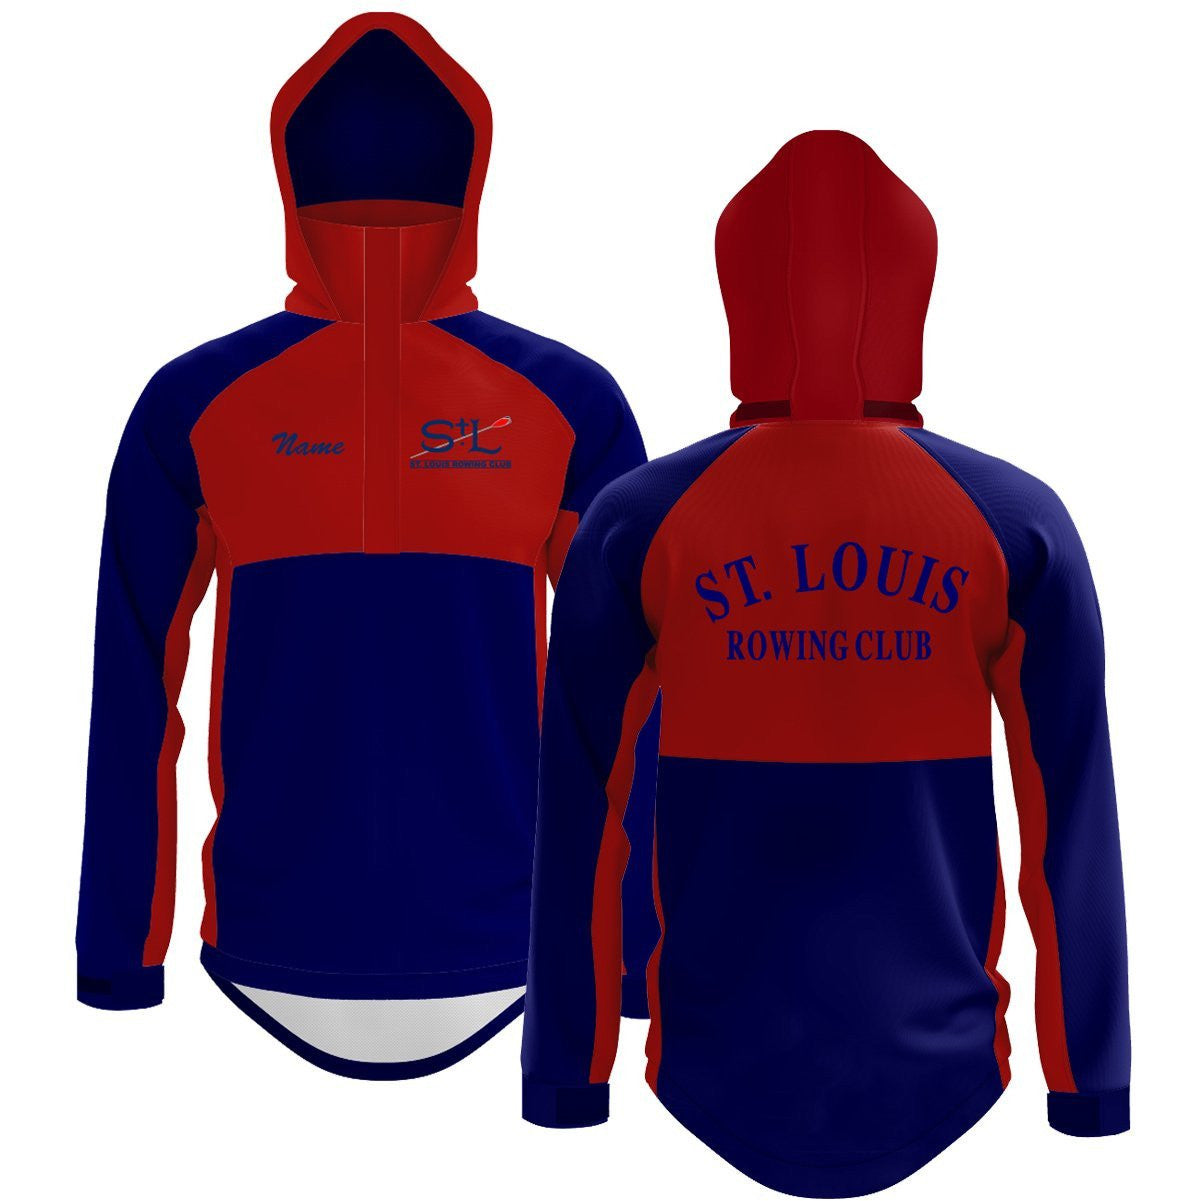 St. Louis Rowing Club HydroTex Elite Performance Jacket